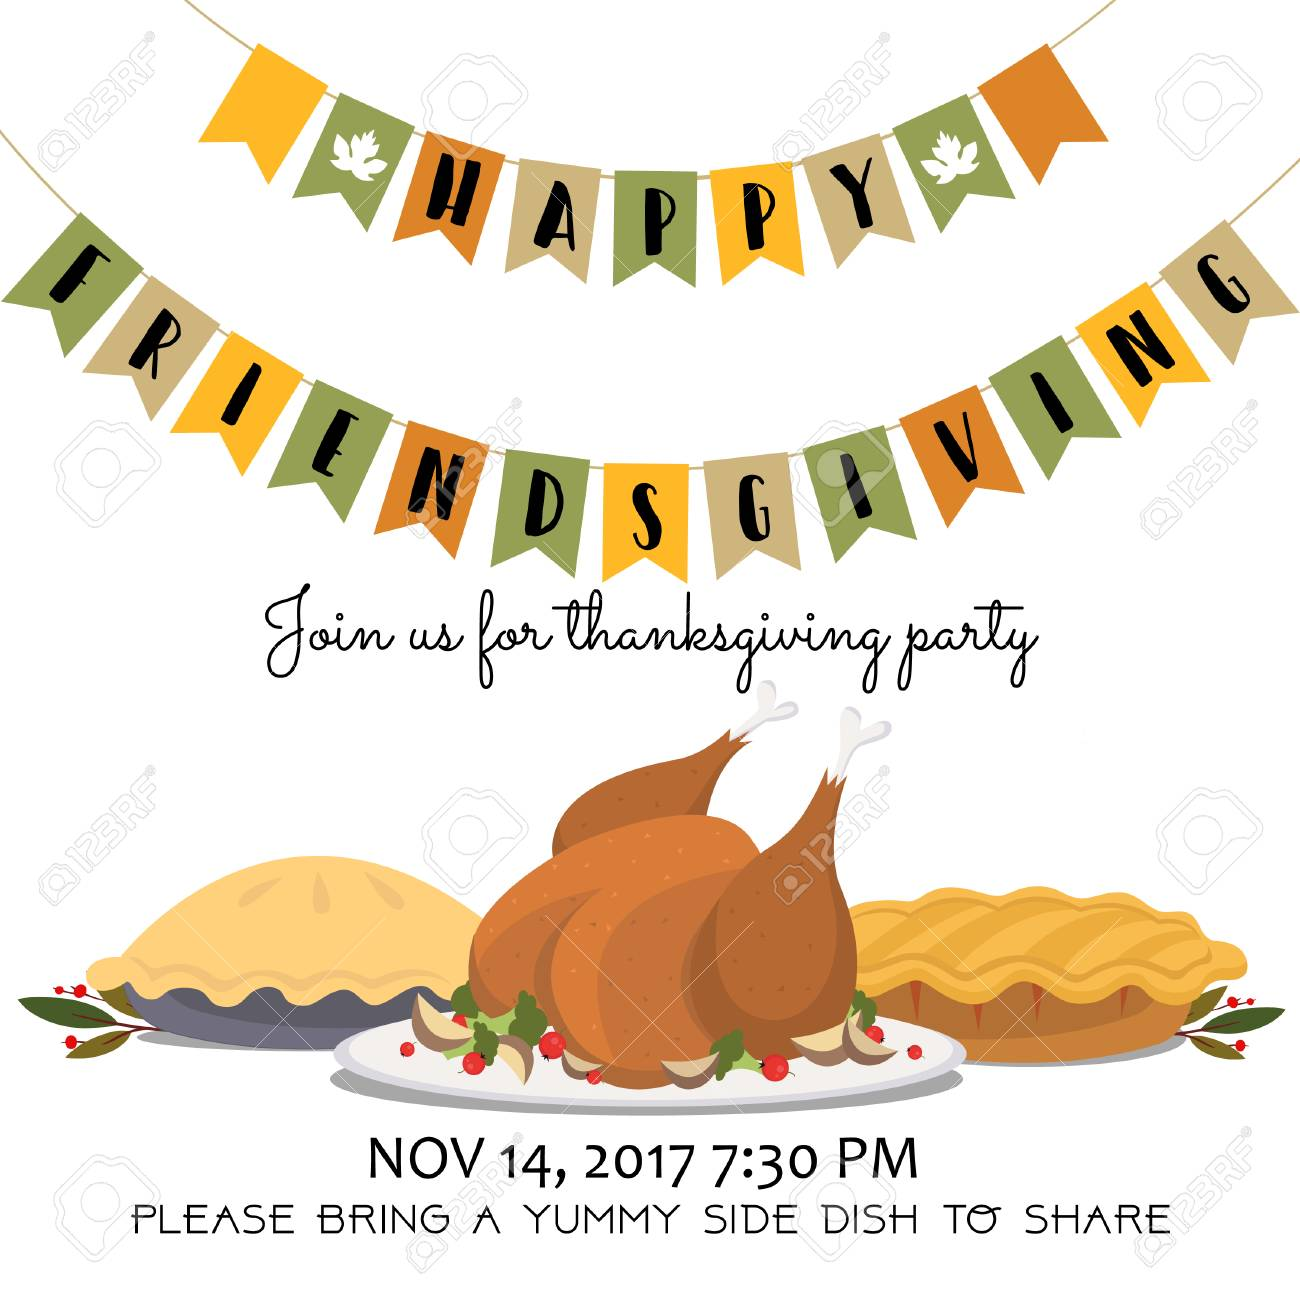 happy friendsgiving invitation card with roasted turkey and pies